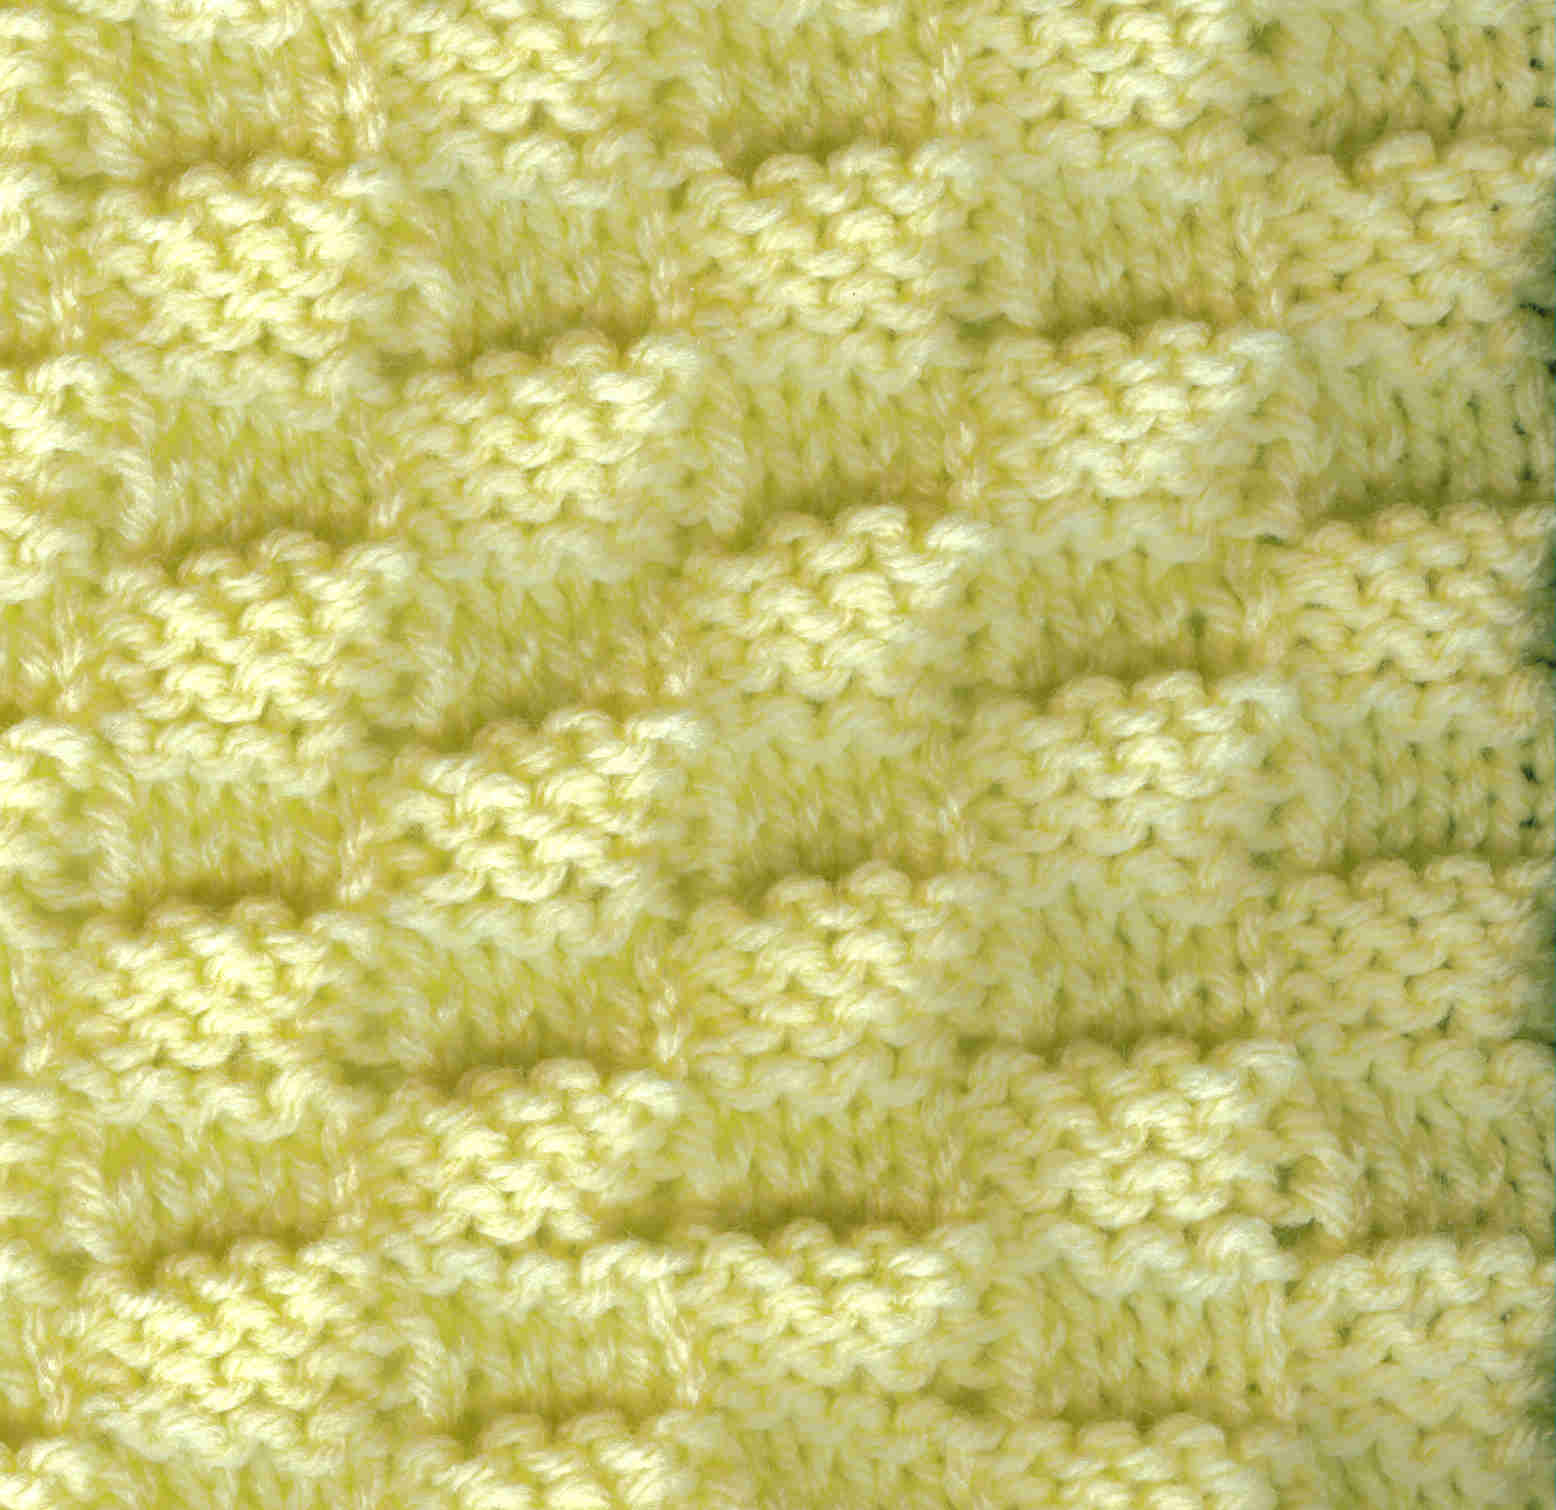 jbarrett5: glossary and sample pictures of knit stitches